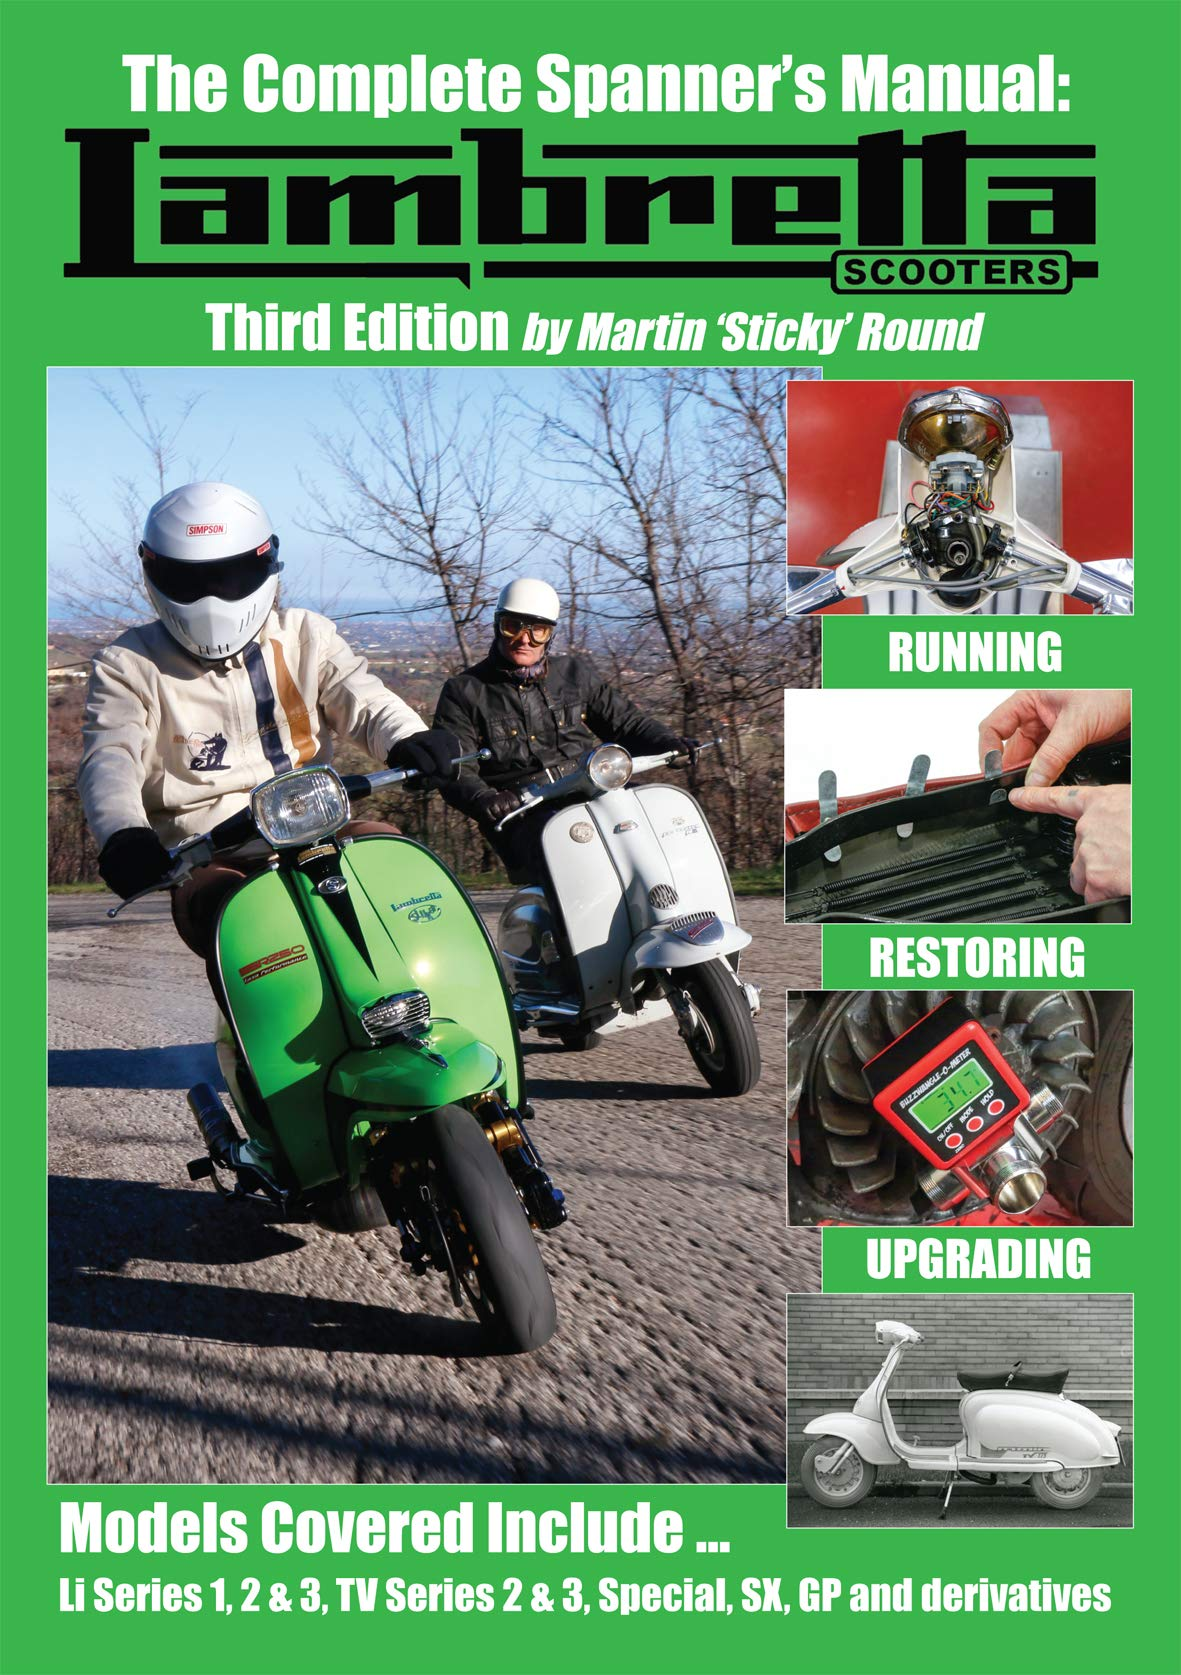 The Complete Spanner's Manual: Lambretta Scooters: Third Edition:  Amazon.co.uk: Martin 'Sticky' Round: 9780954821654: Books